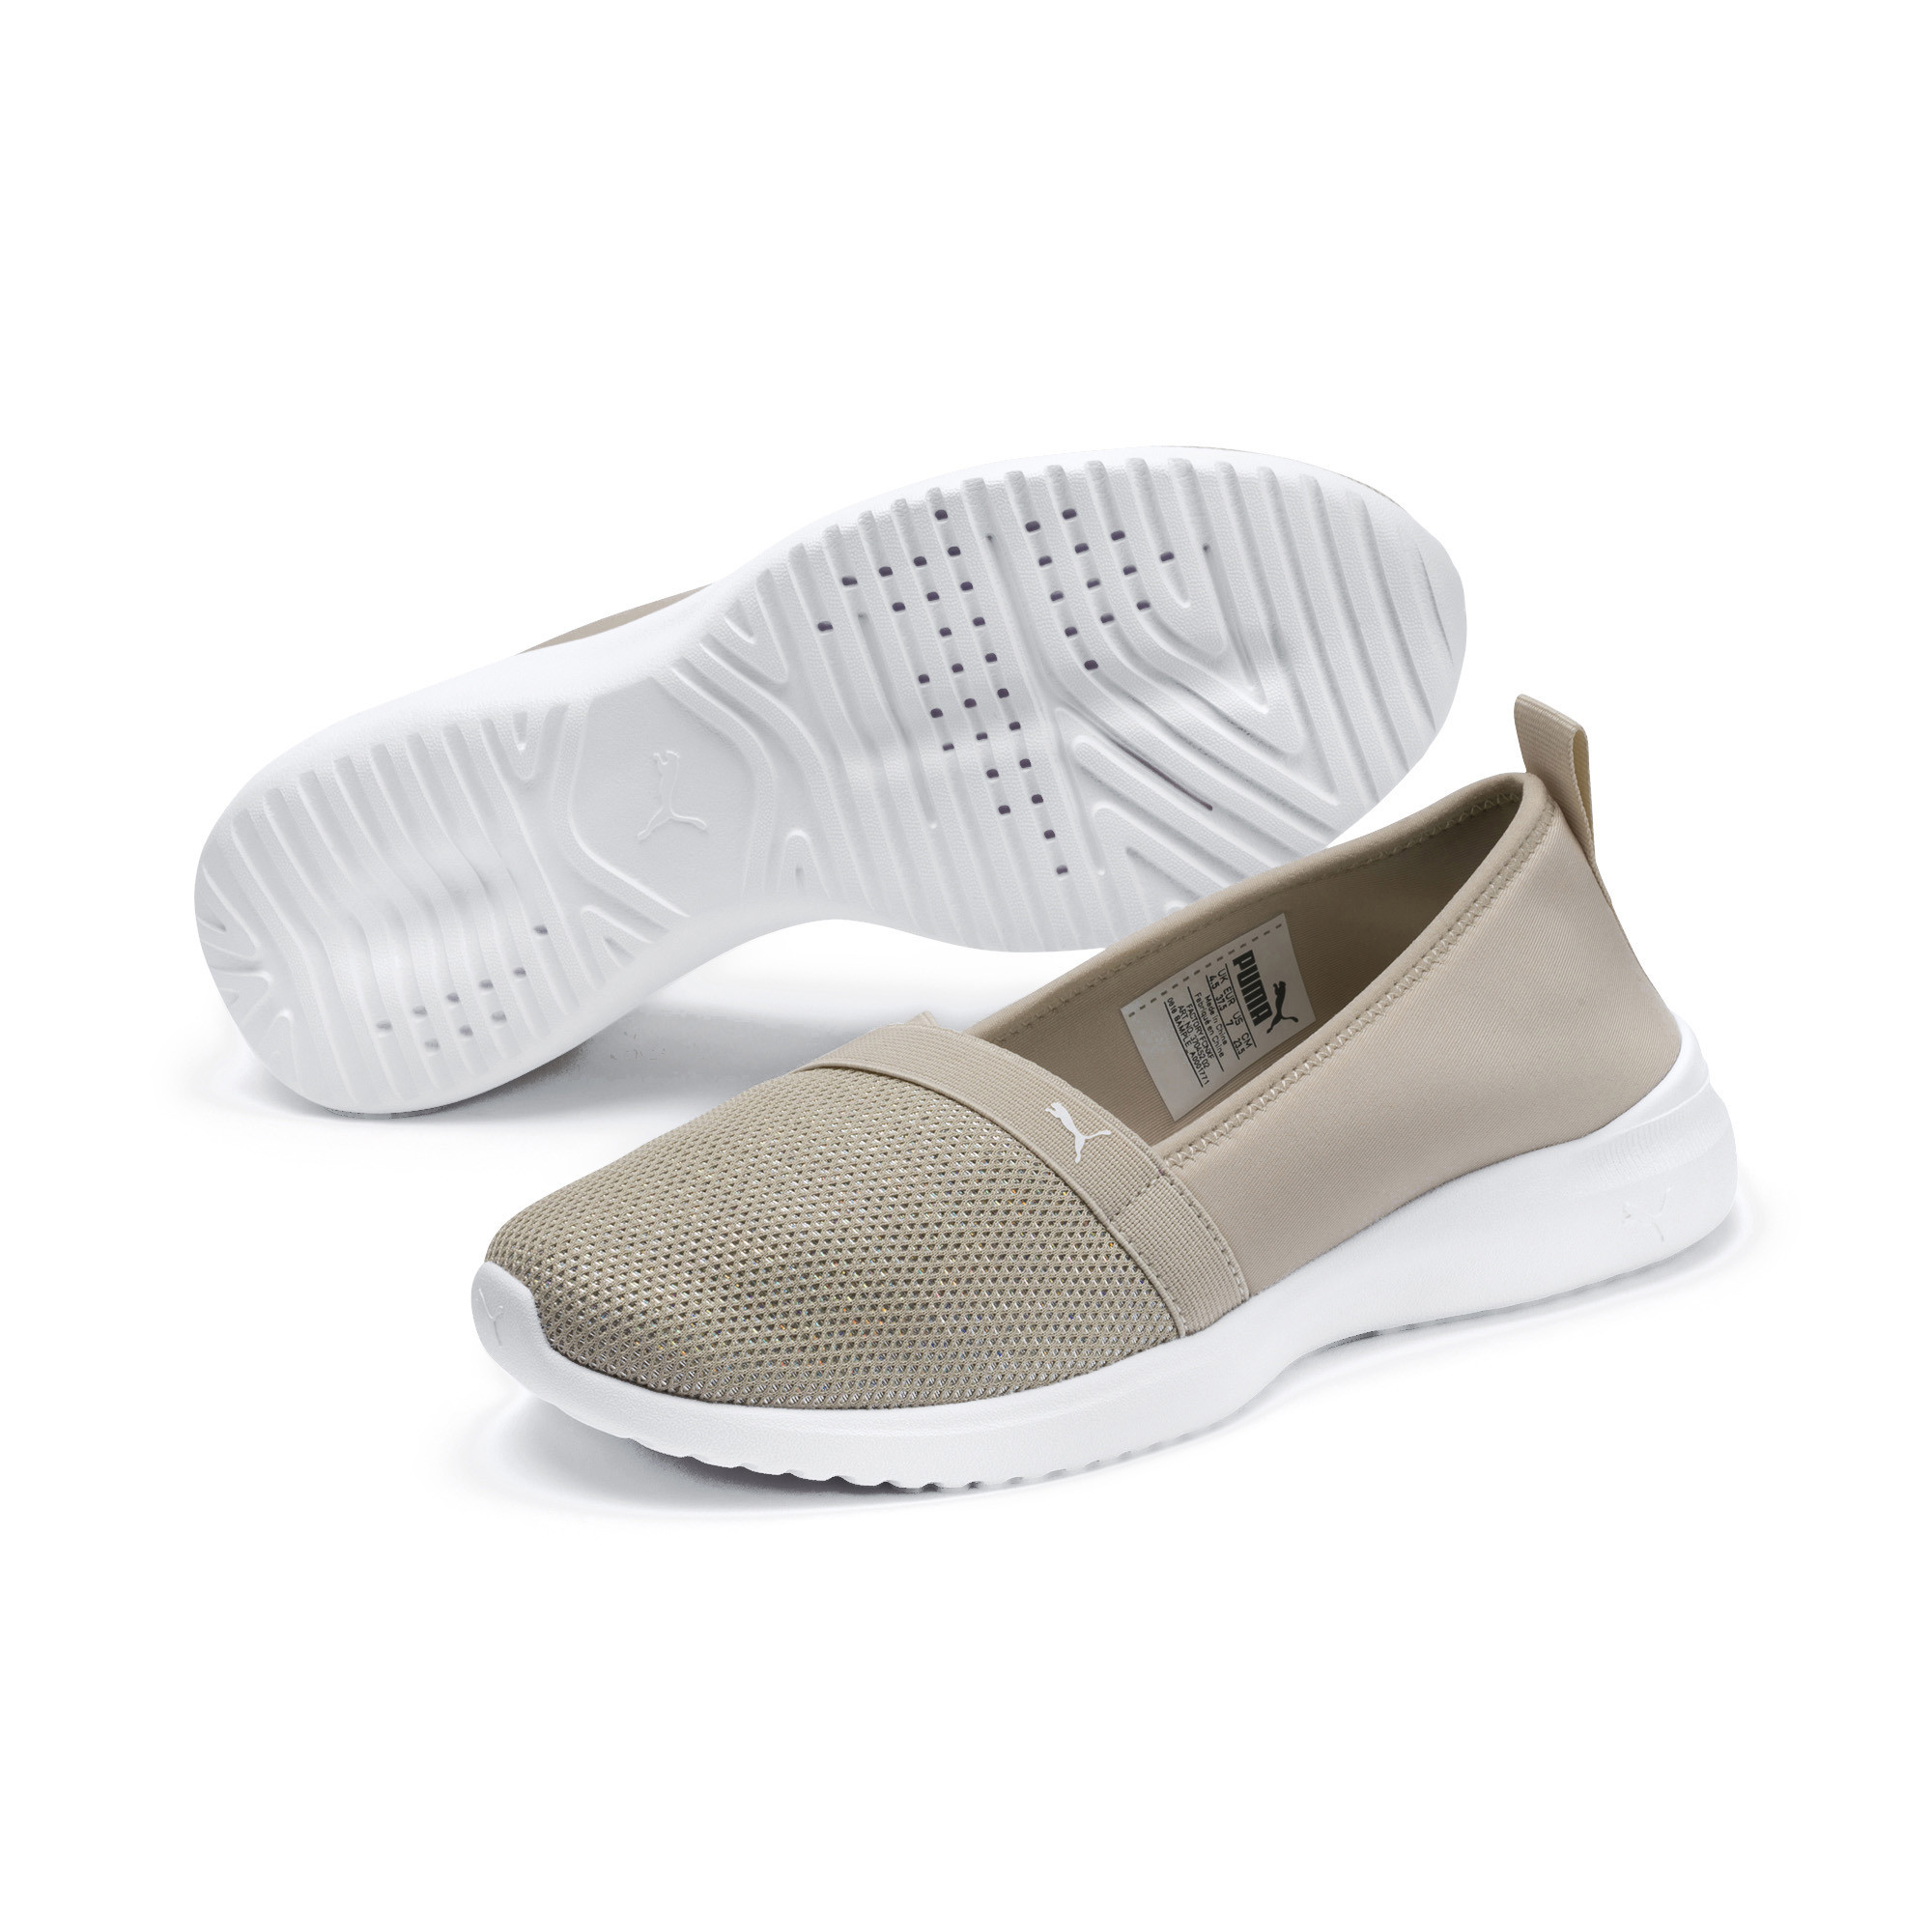 PUMA-Adelina-Sparkle-Women-s-Ballet-Shoes-Women-Shoe-Basics thumbnail 7